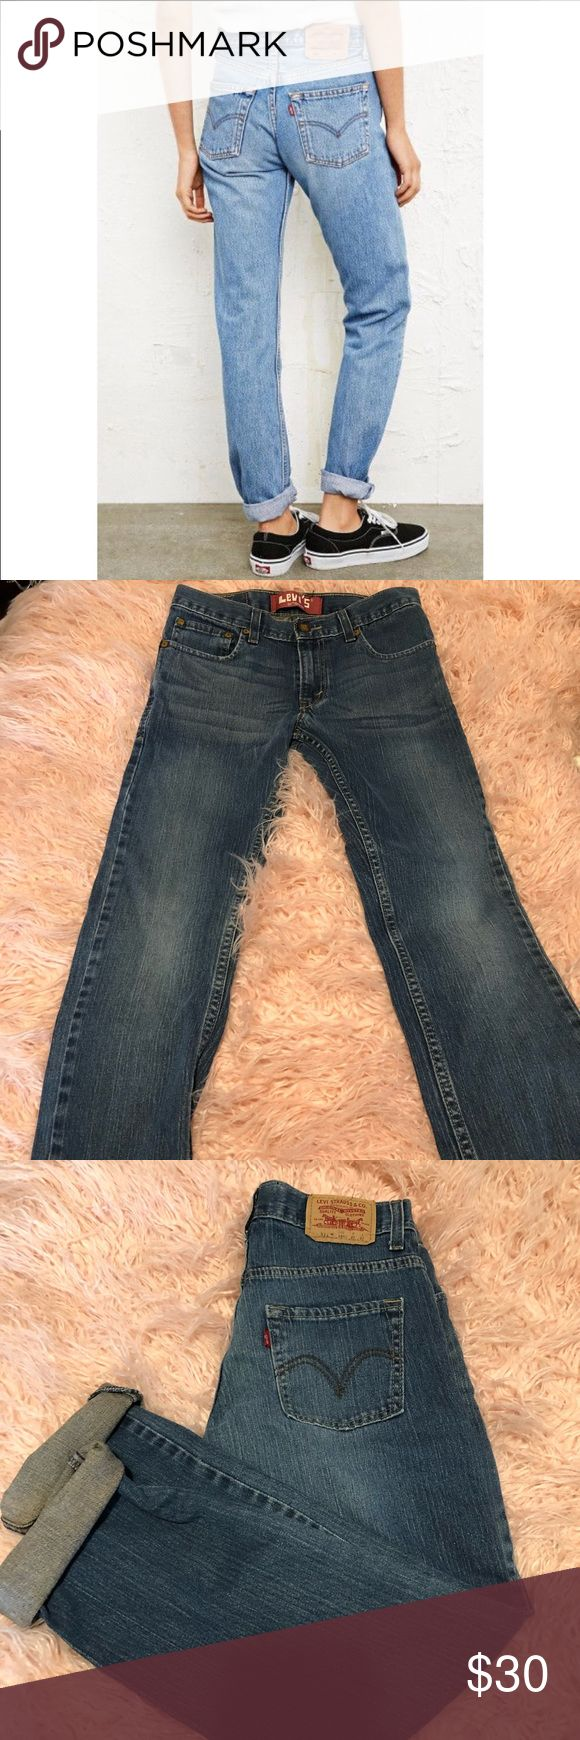 "Levi 511 Skinny Fit Jeans Levi Strauss 511 skinny fit jeans in excellent condition.  Waist 27""  Length 27"" Levi's Jeans Skinny"